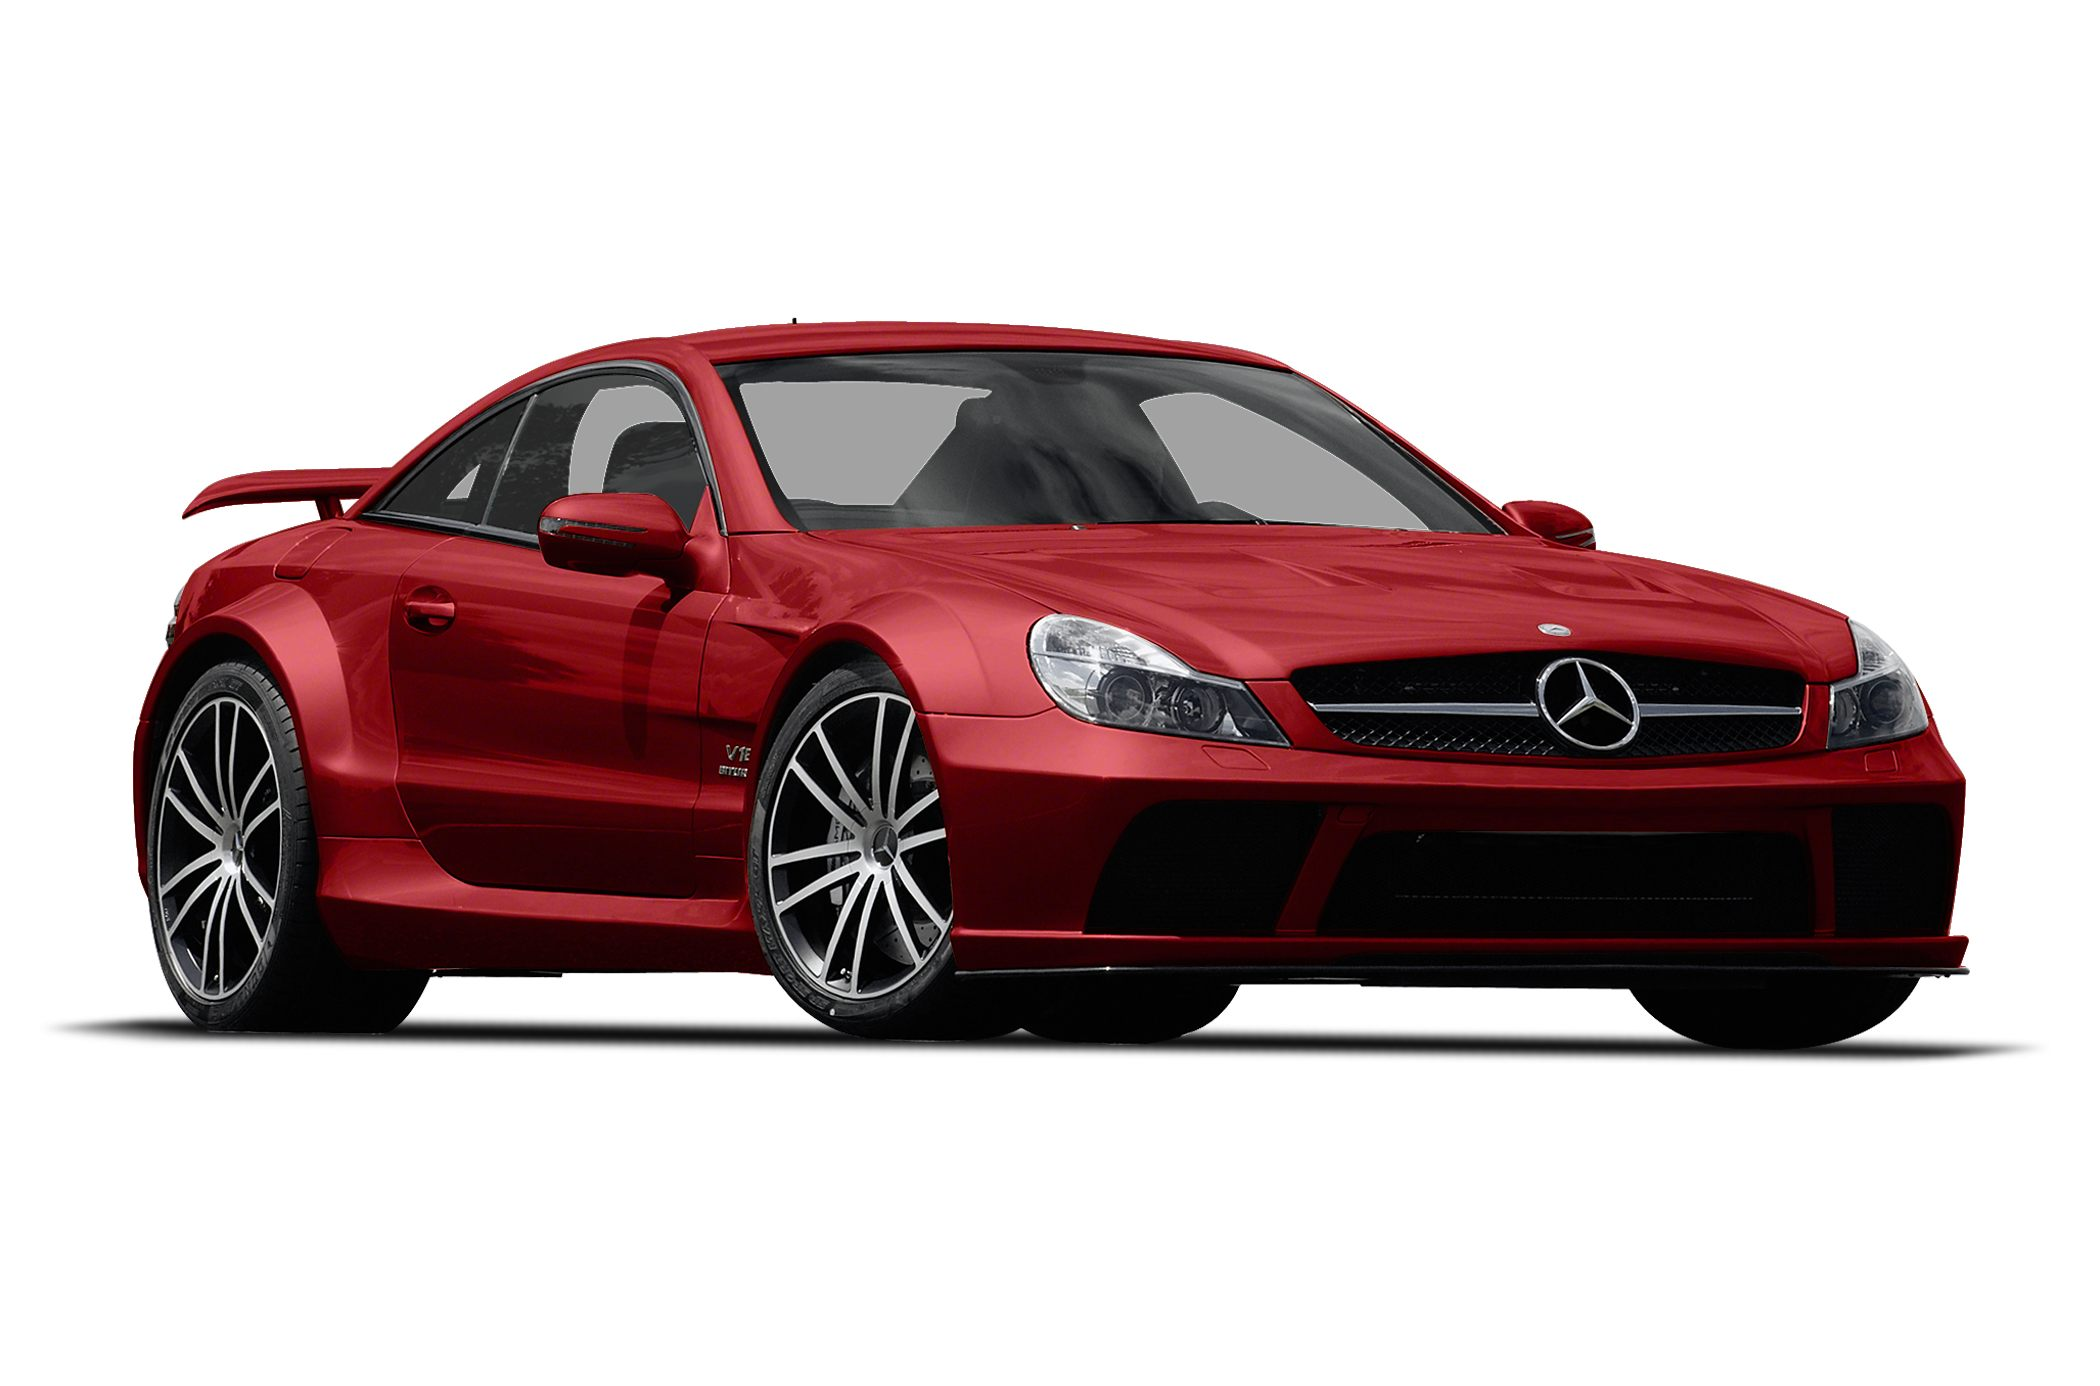 2009 Mercedes-Benz SL-Class